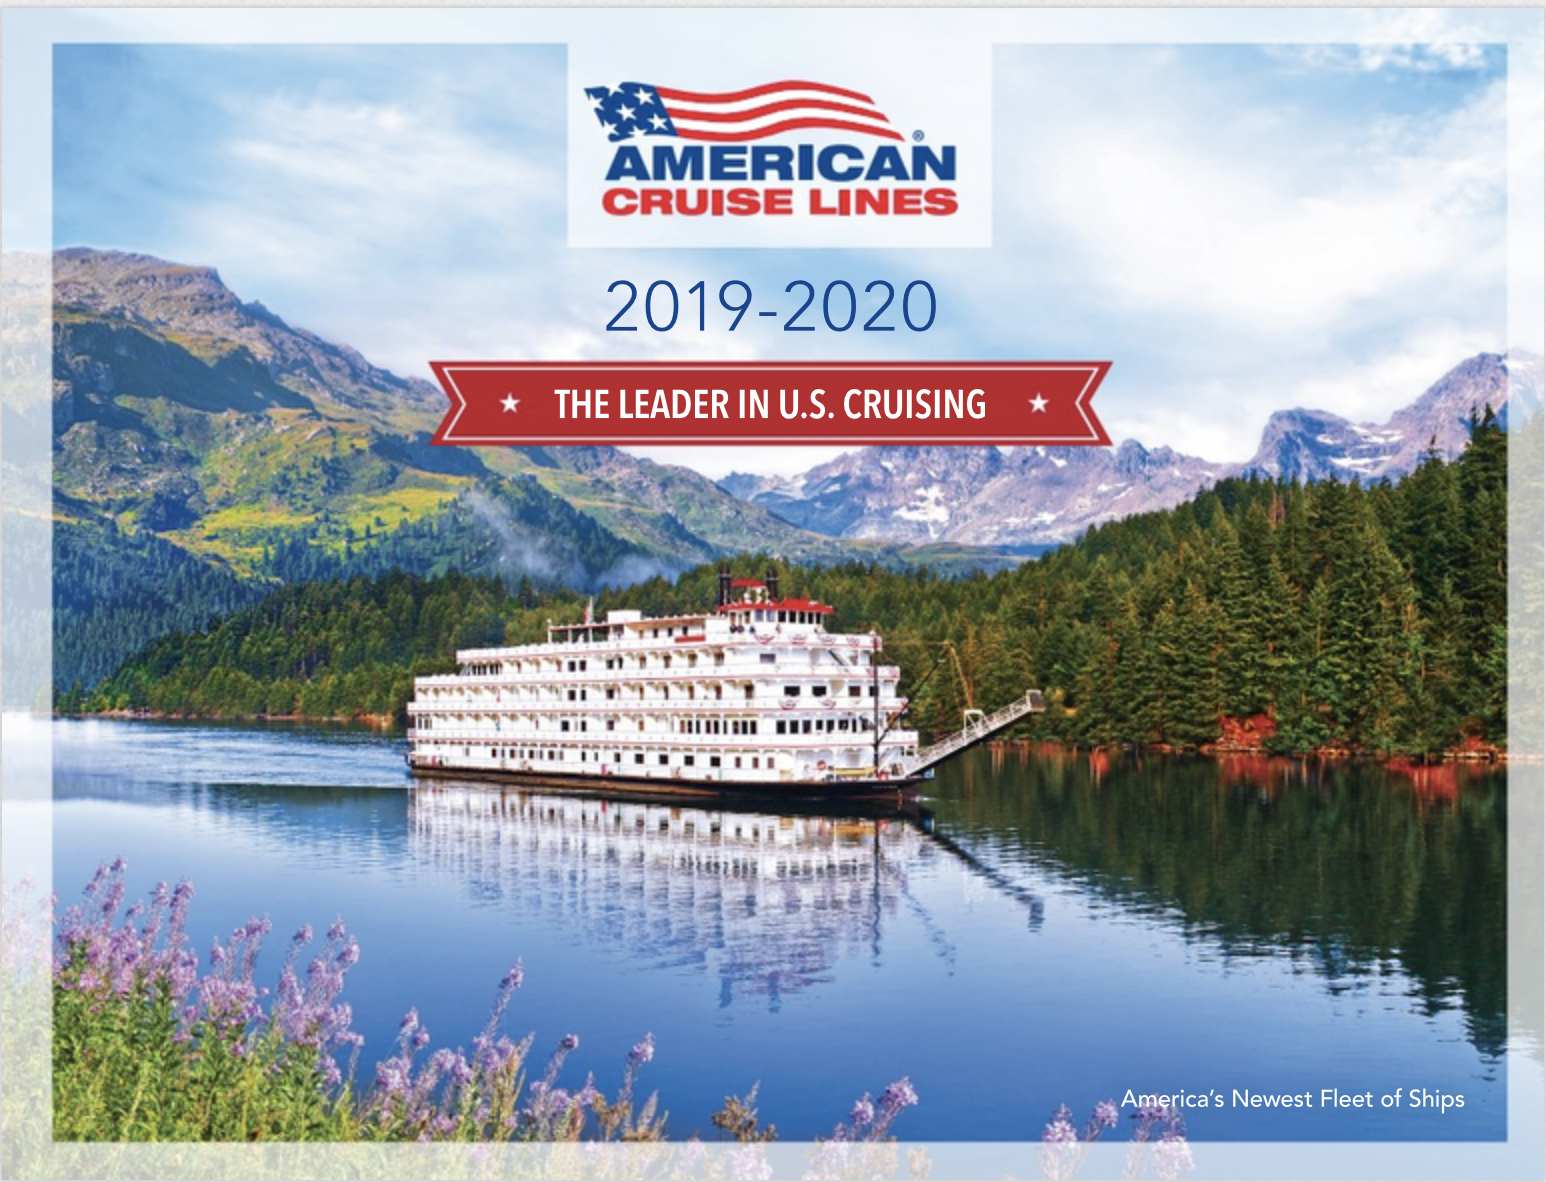 American Cruise Lines 2019-2020